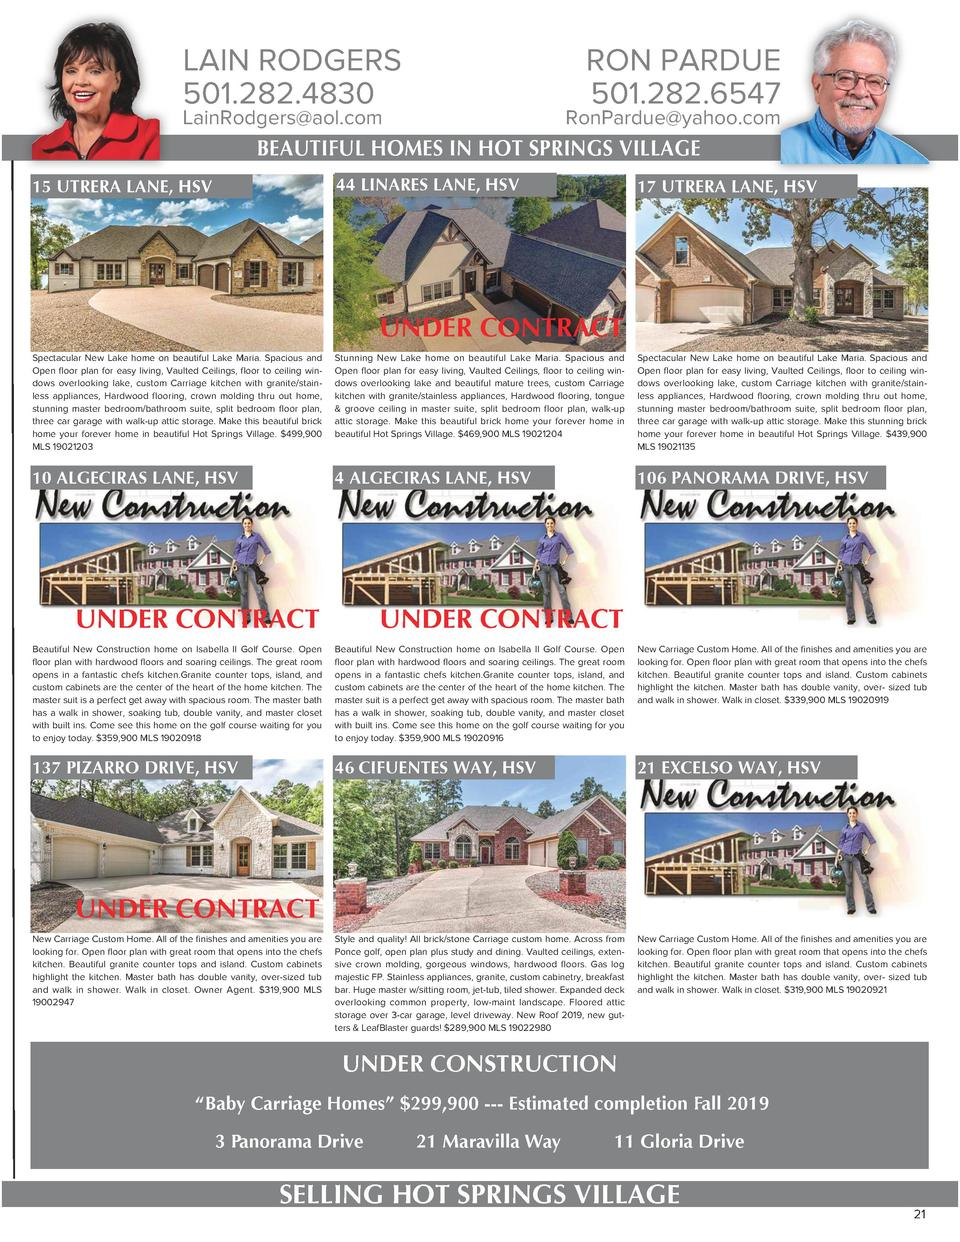 LAIN RODGERS 501.282.4830  RON PARDUE 501.282.6547  LainRodgers aol.com  RonPardue yahoo.com  BEAUTIFUL HOMES IN HOT SPRIN...